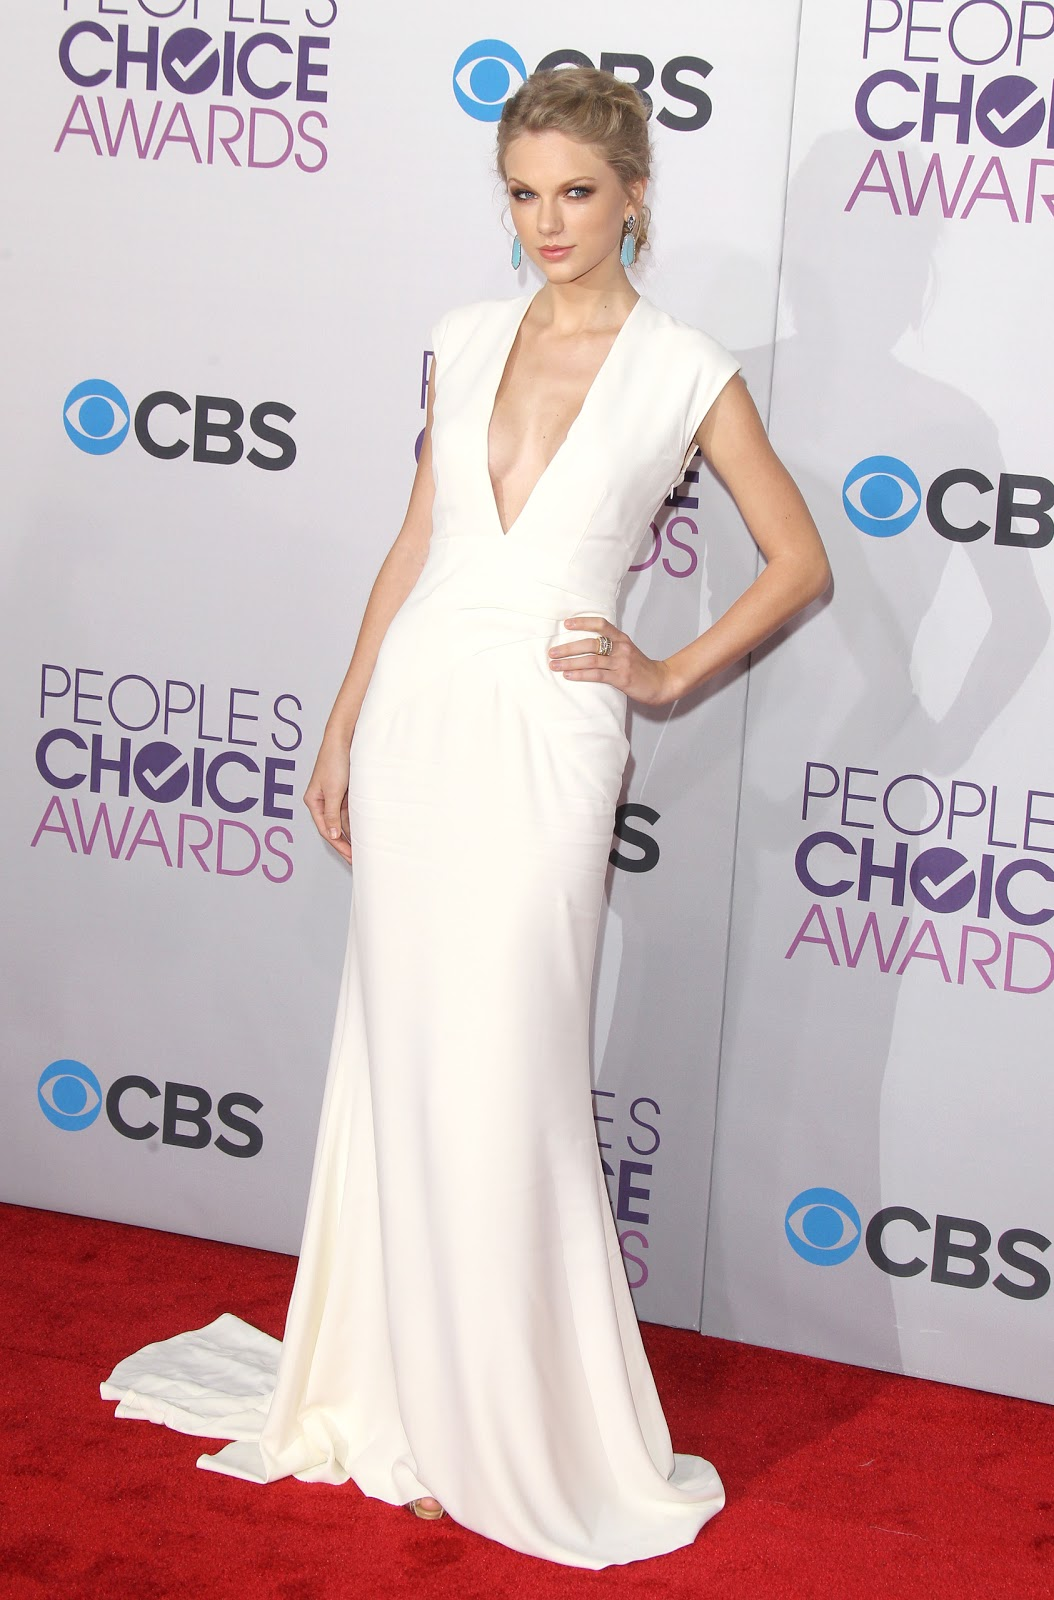 Taylor Swift White Prom Dress Peoples Choice Xdressy